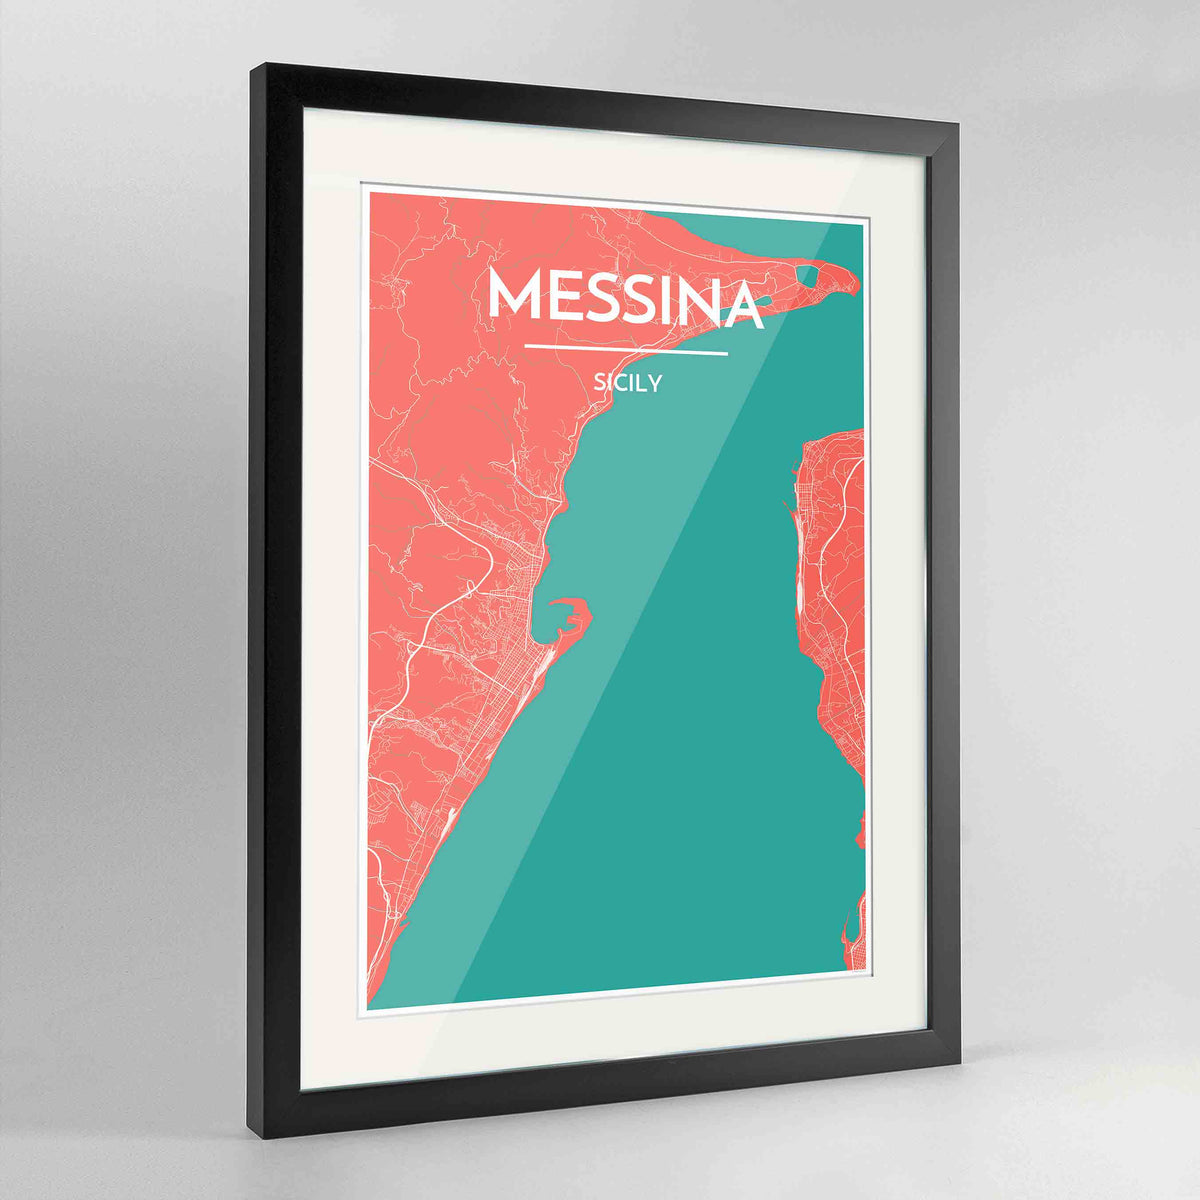 "Framed Messina Map Art Print 24x36"" Contemporary Black frame Point Two Design Group"